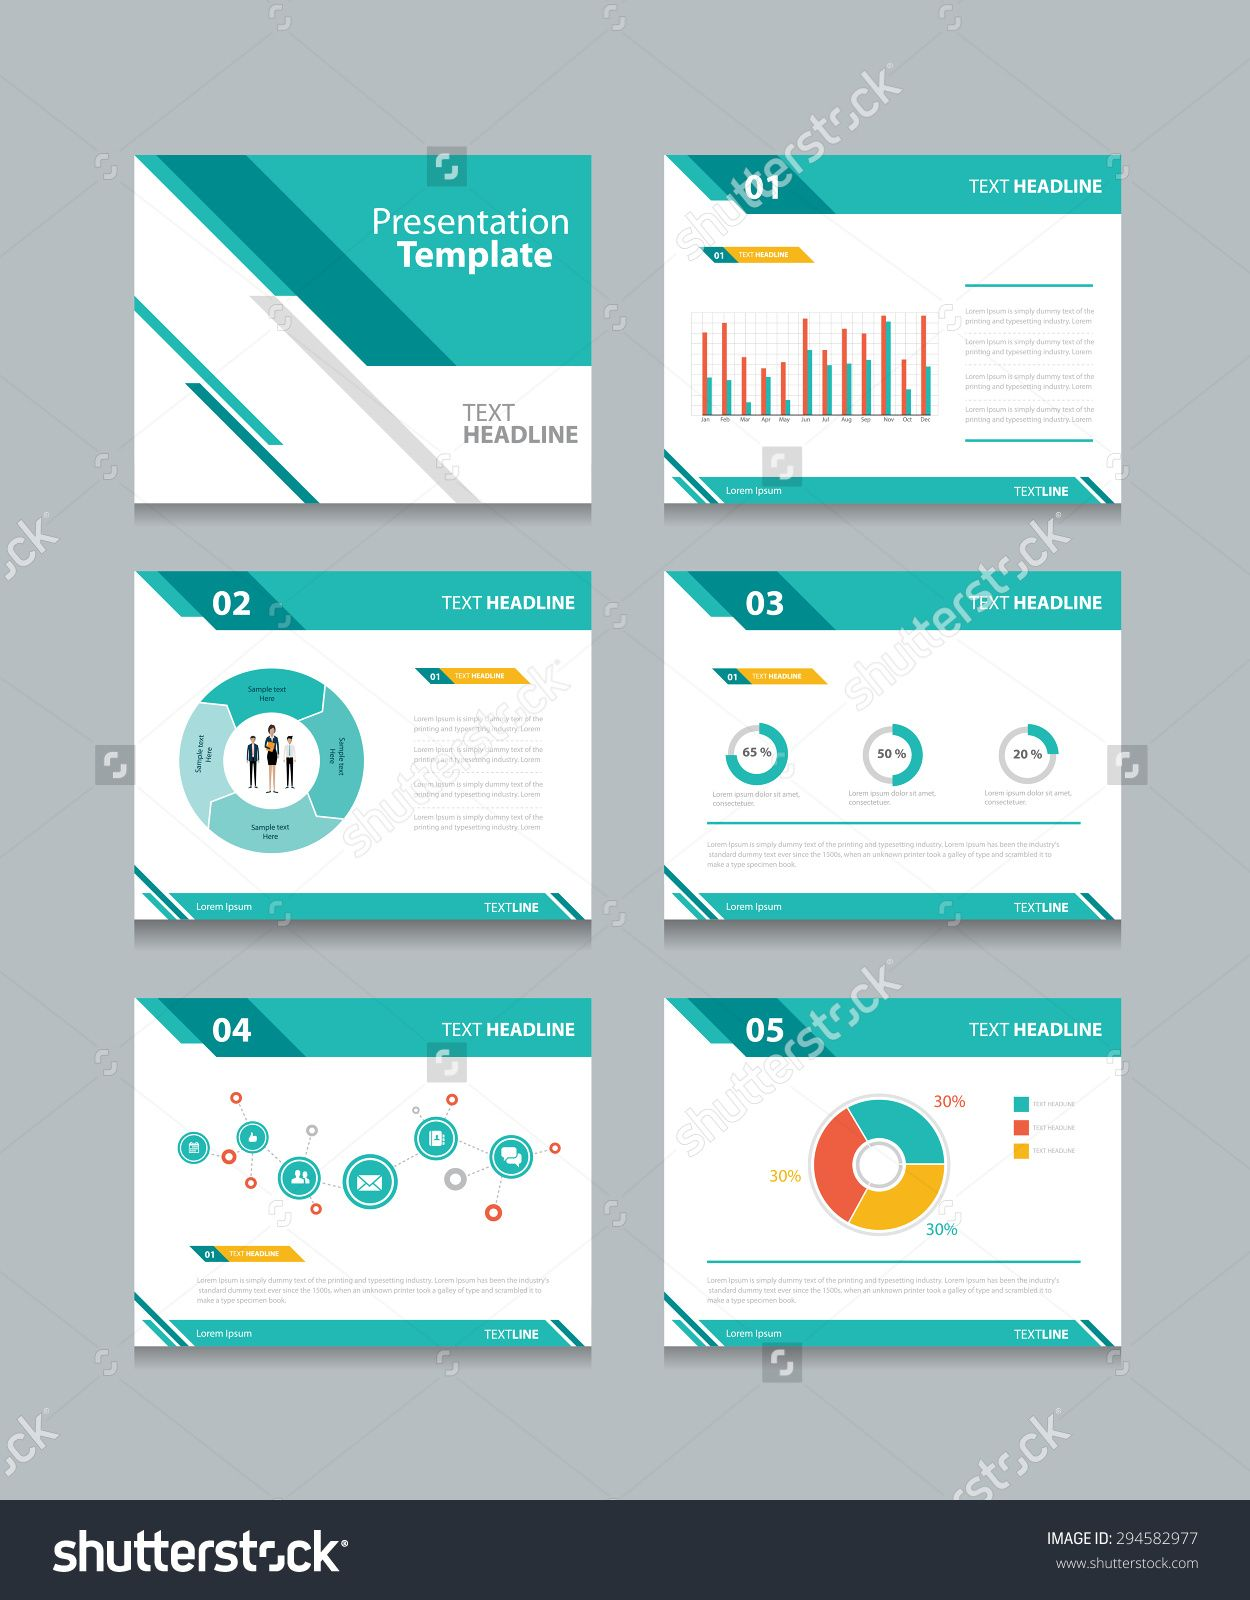 Powerpoint templates for business presentations selowithjo business presentation template set powerpoint template design accmission Choice Image